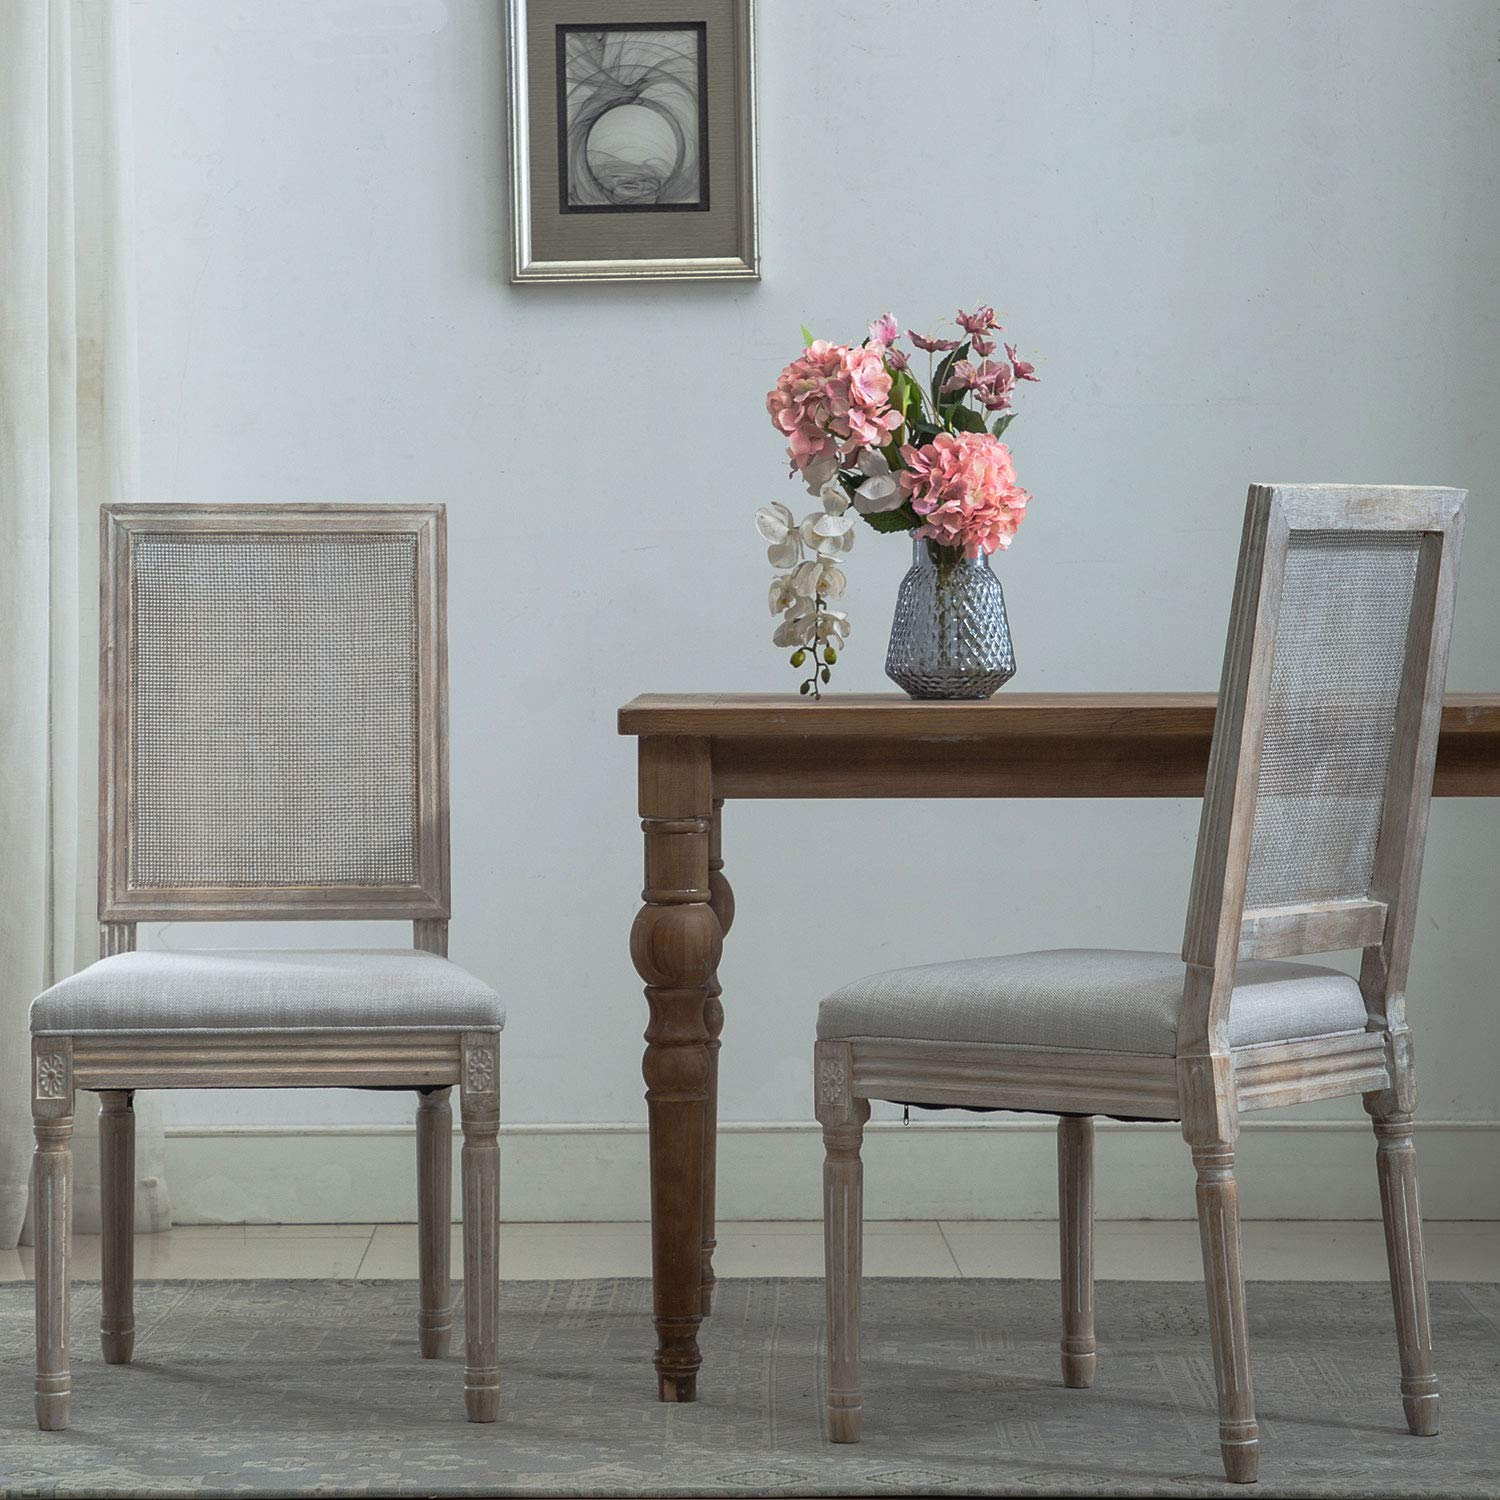 French Dining Chairs, Distressed Elegant Tufted Kitchen Chairs with Rectangle Fine Rattan Back - Set of 2 - Beige Gray